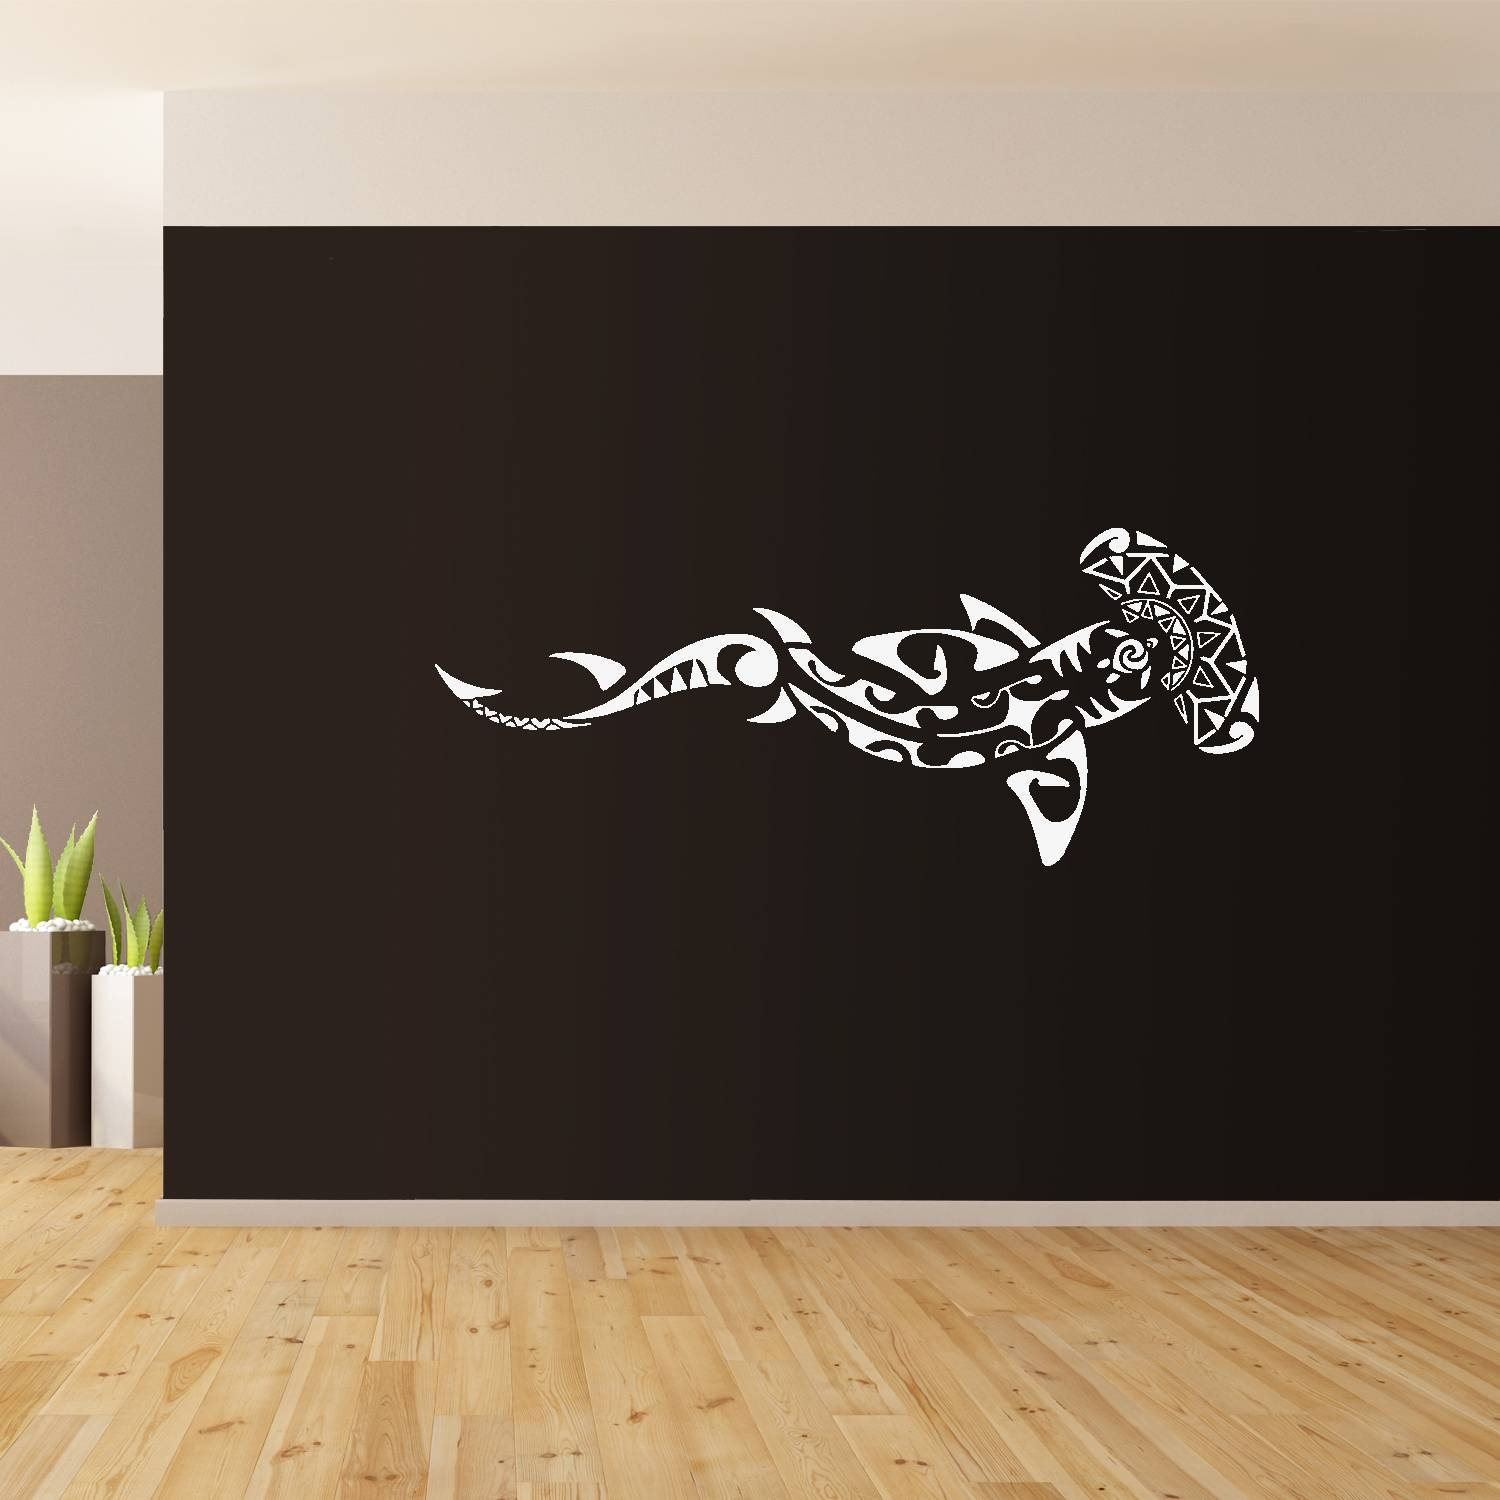 Polynesian Shark Wall Art Giant Sticker Mural Graphic Wallart Sea Throughout Most Current Polynesian Wall Art (View 11 of 20)